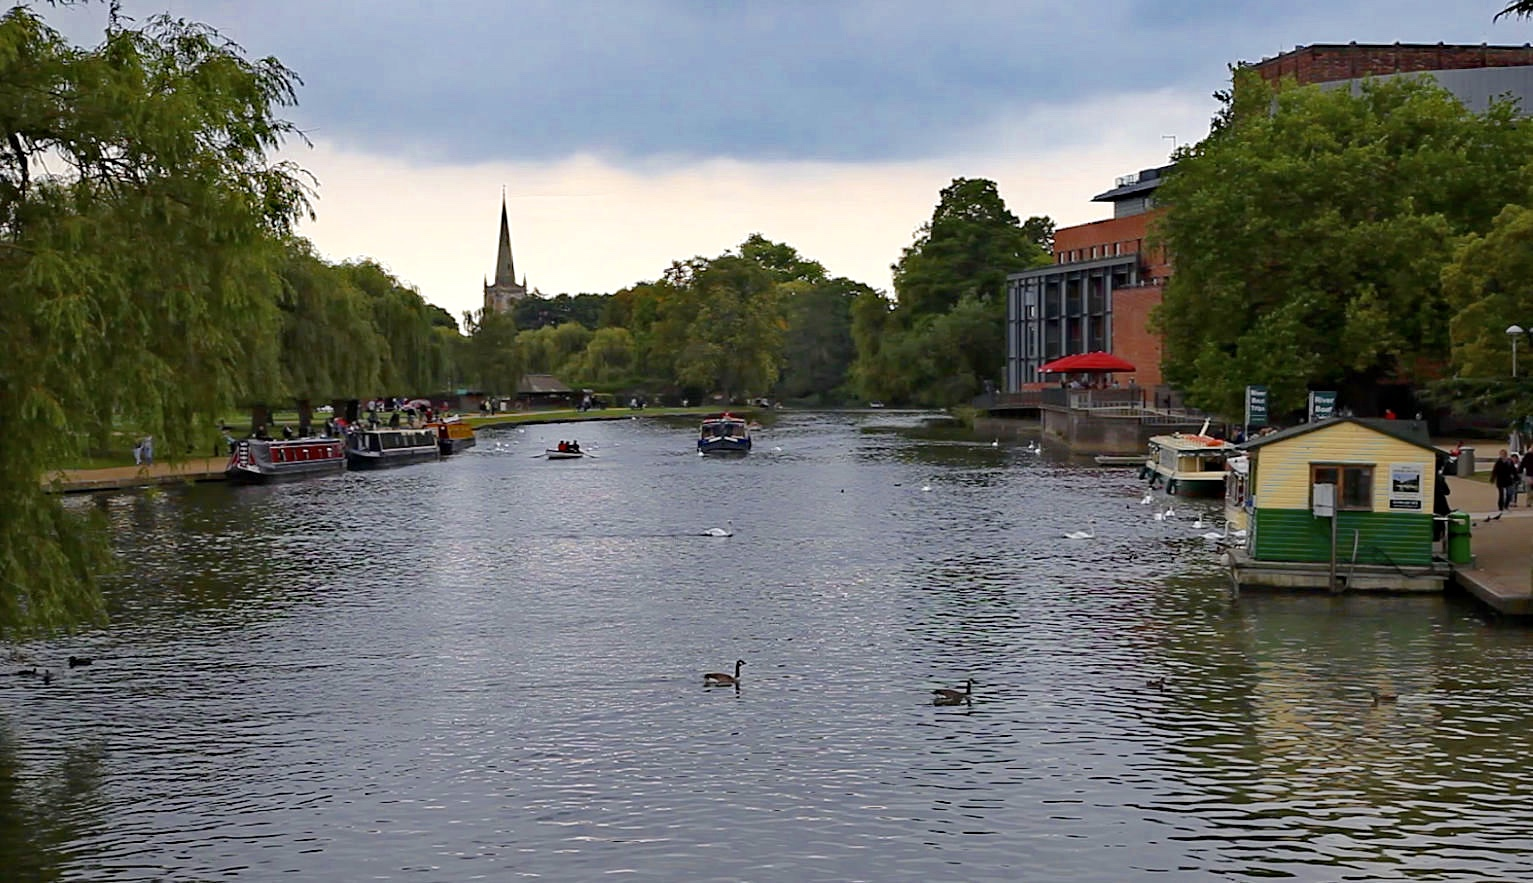 Looking down the Avon towards the spire of Holy Trinity Church with the Shakespeare Theatre on the right. Photo by Edward Burman